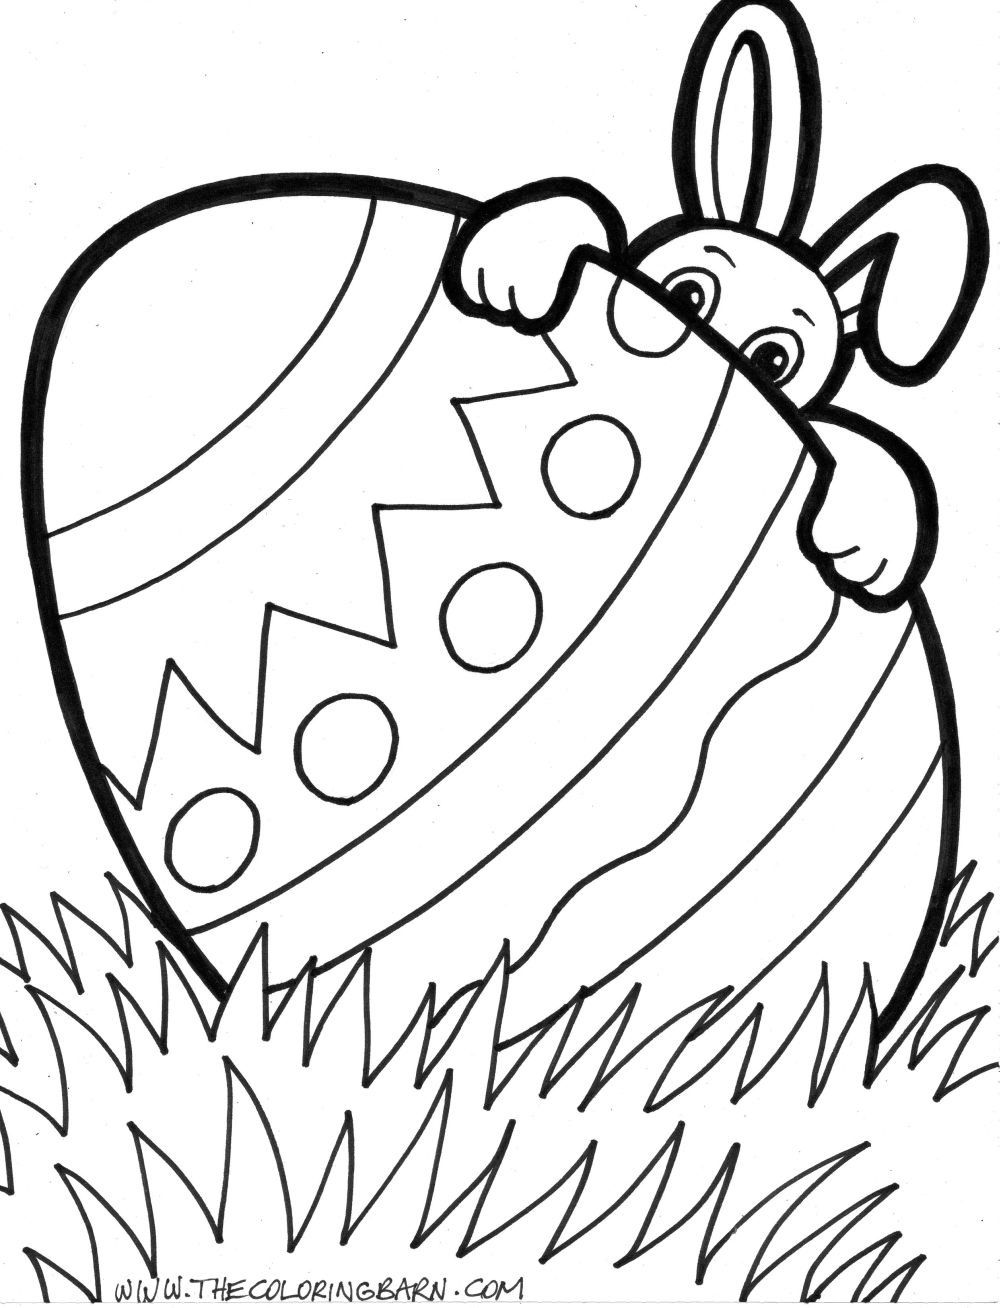 Adult Cute Coloring Pages Of Easter Eggs Gallery Images top bunny easter coloring pages egg 01 printable 5 gallery images